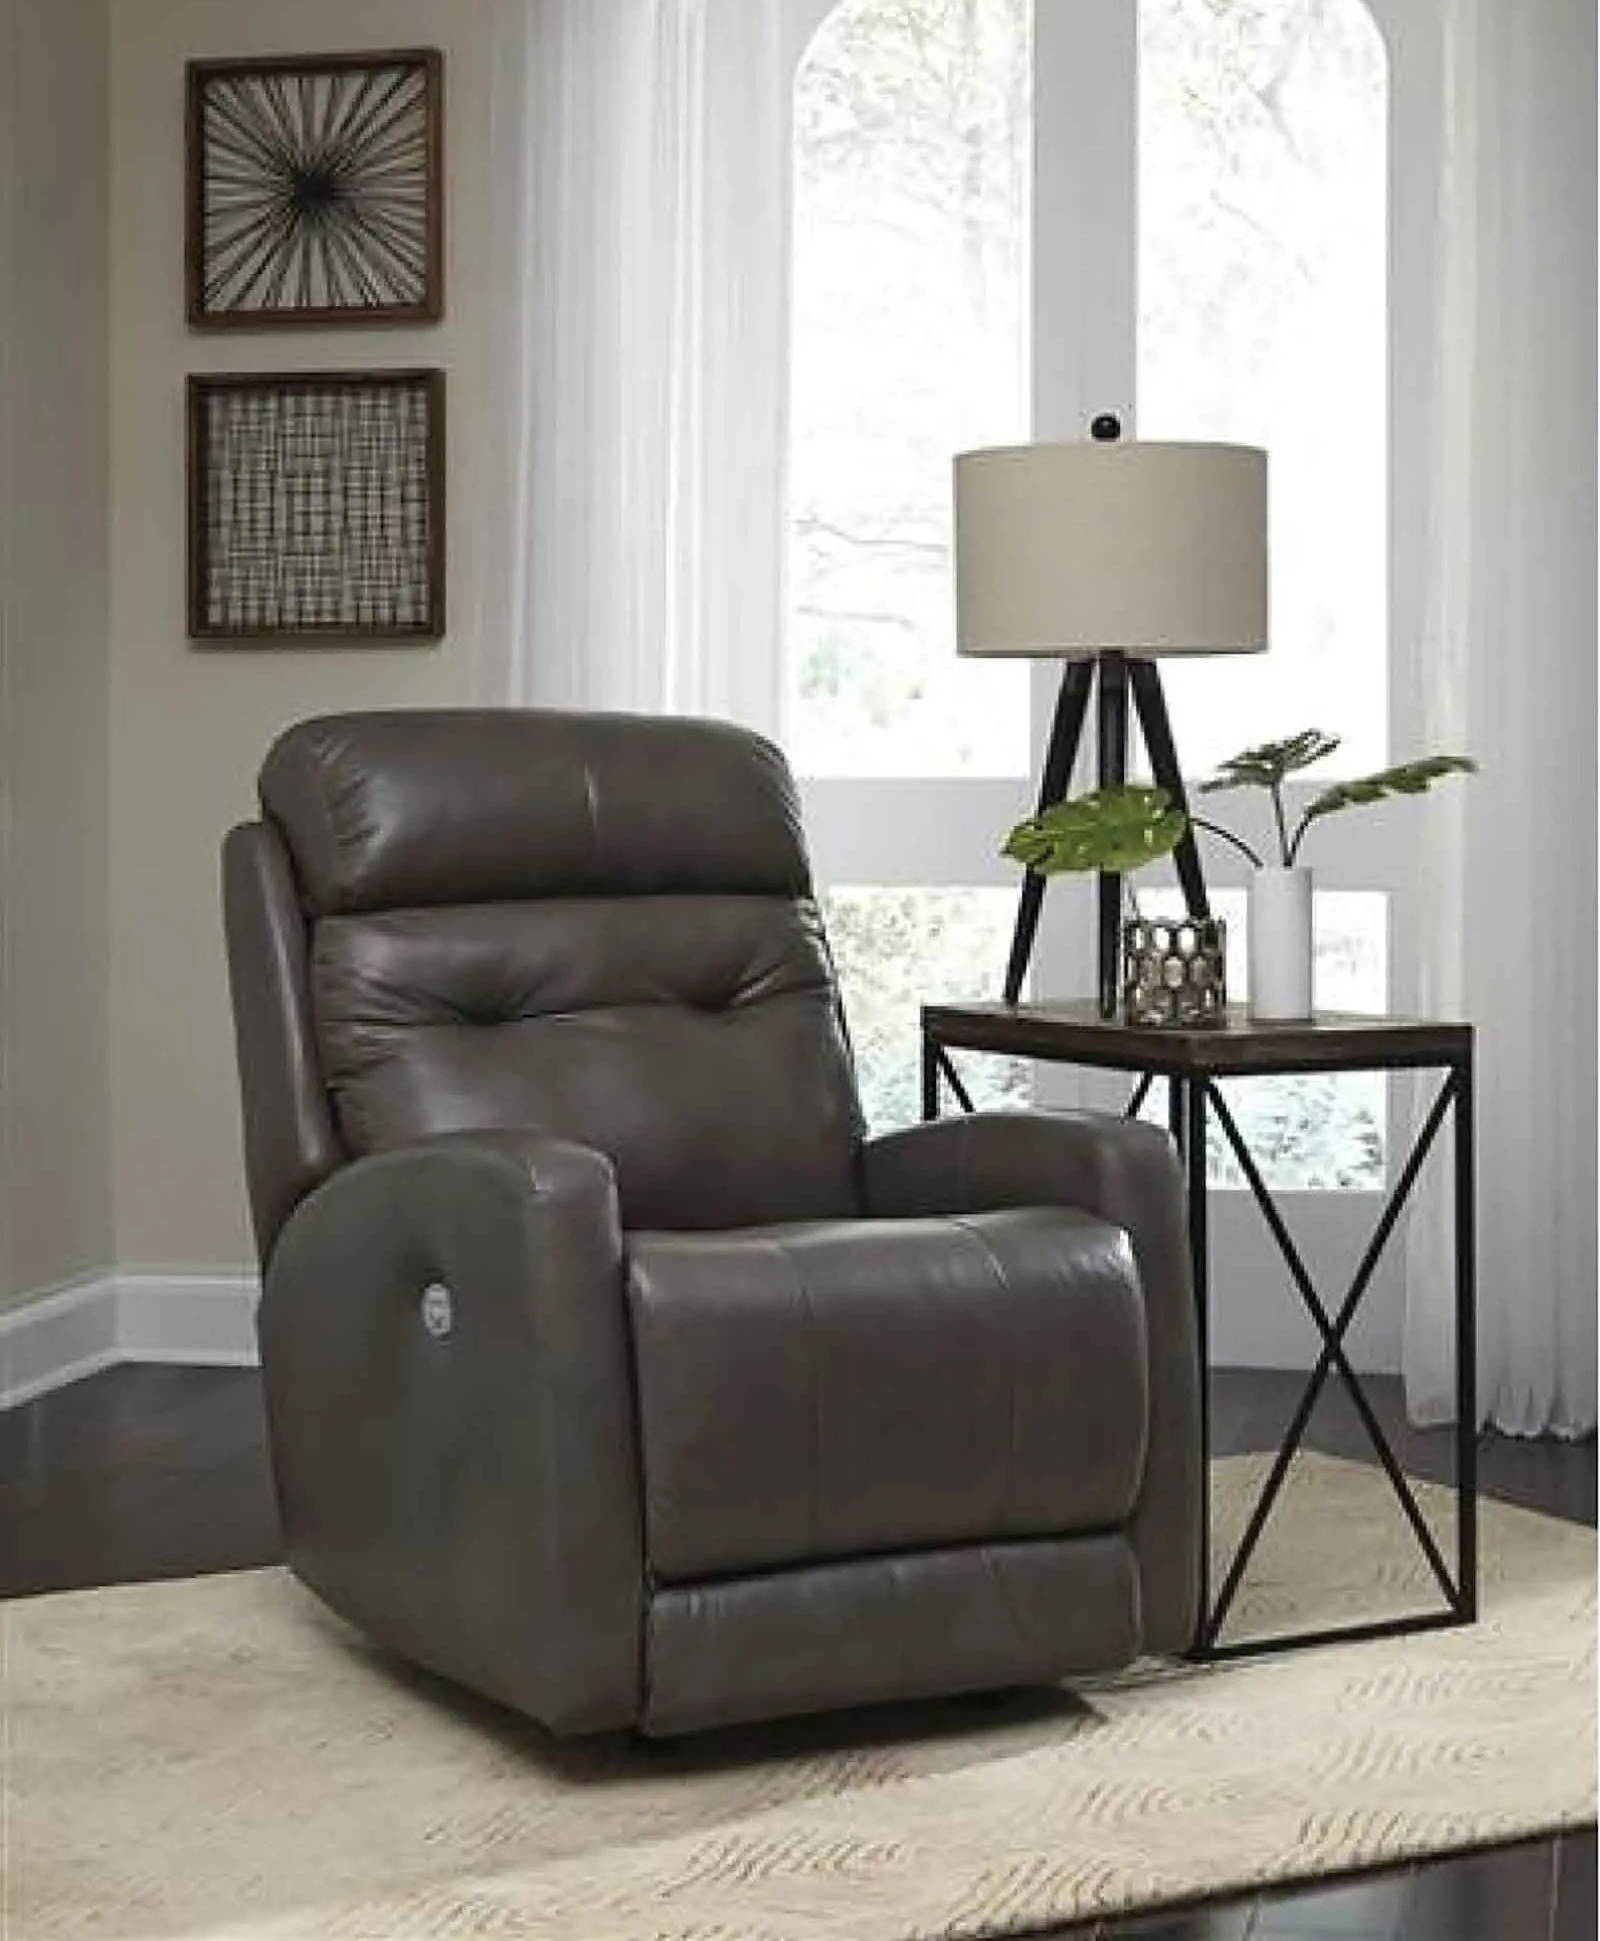 What Are The Different Types Of Recliners?